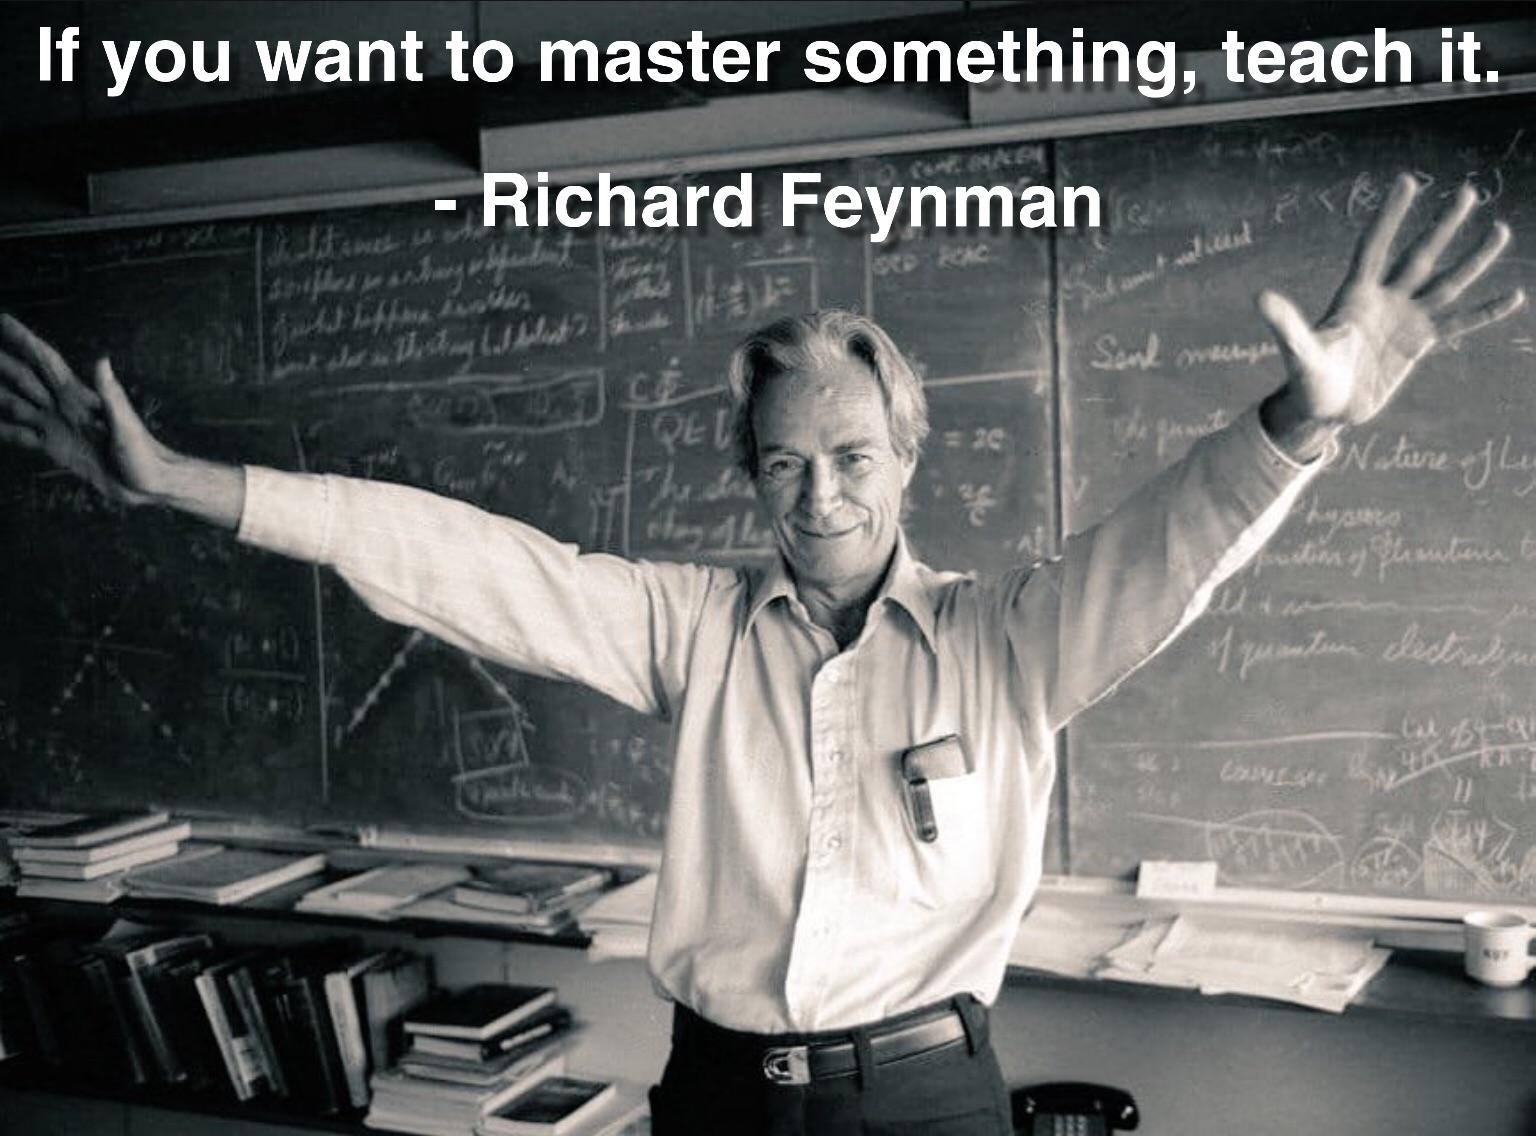 """If you want to master something, teach it."" – Richard Feynman [1536 x 1136]"